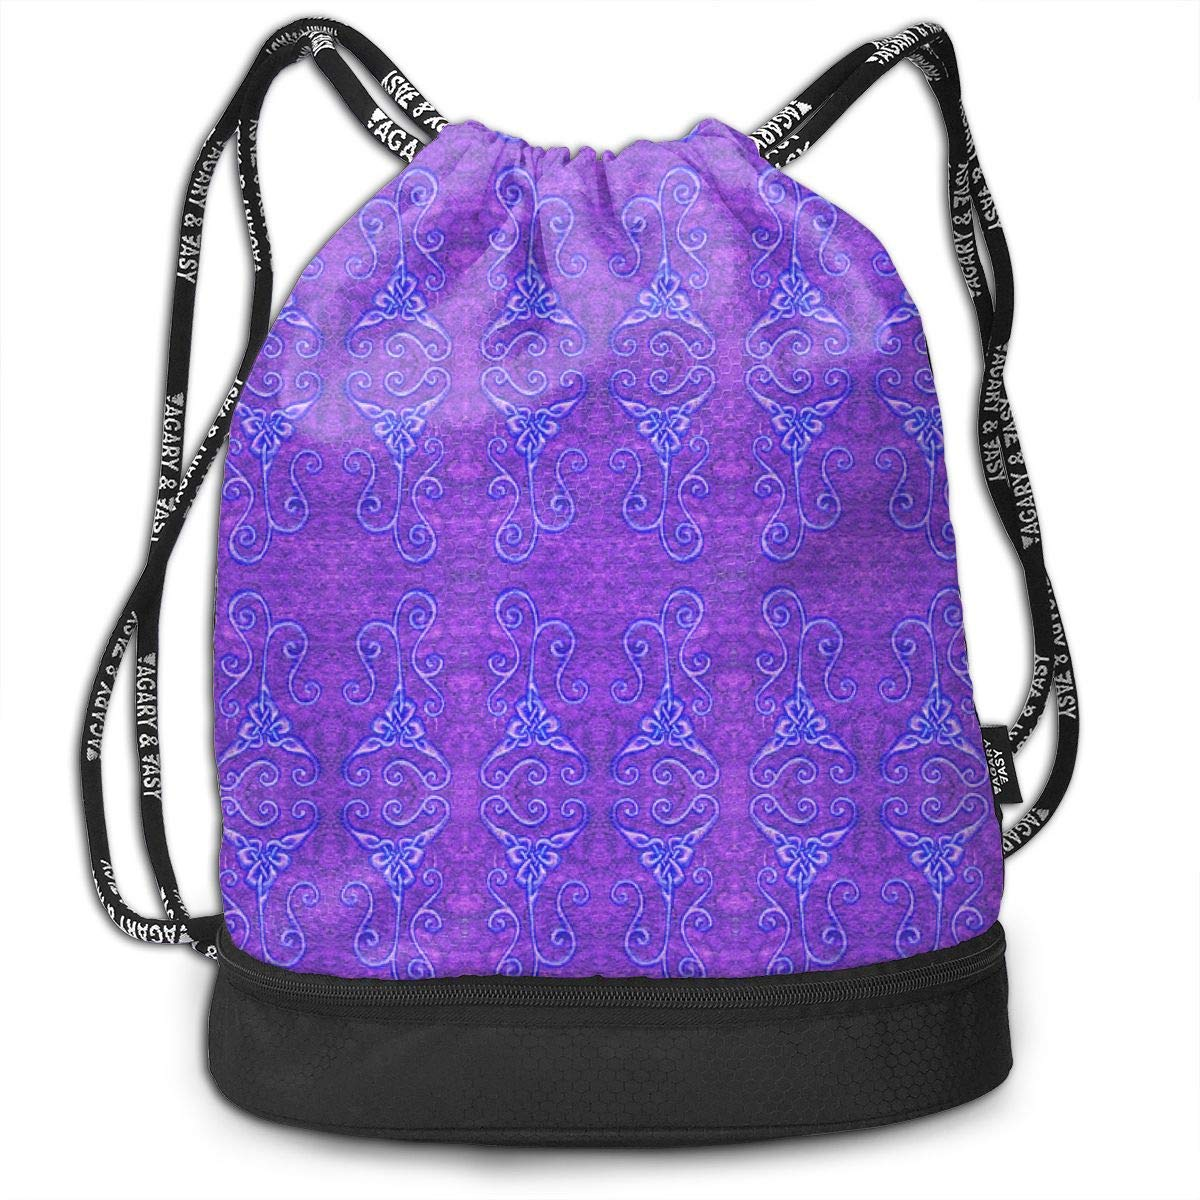 Loopy Purple Knots Drawstring Backpack Sports Athletic Gym Cinch Sack String Storage Bags for Hiking Travel Beach